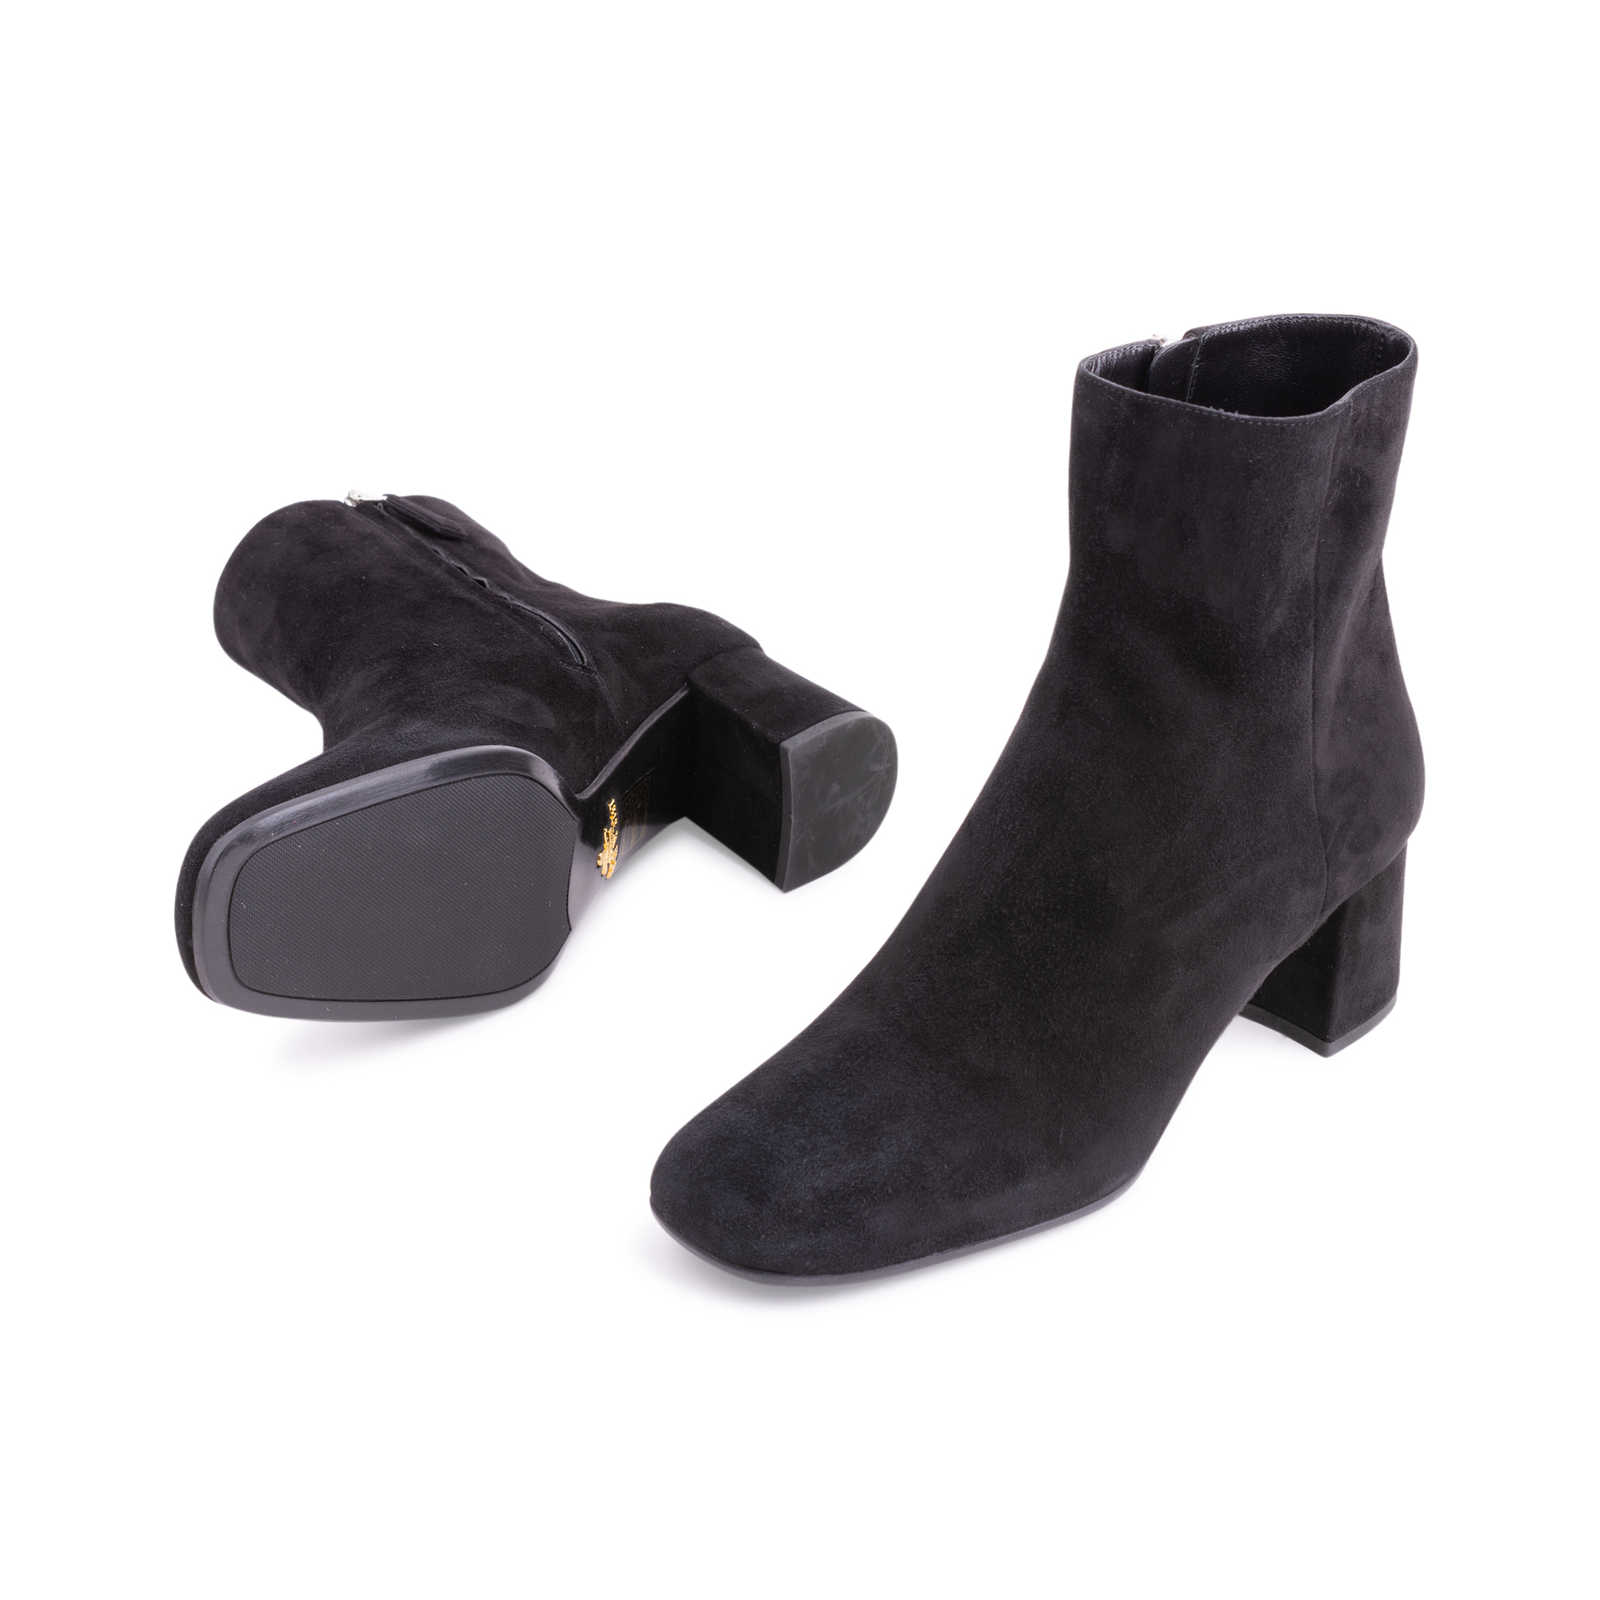 ea218a288a1a60 ... Authentic Second Hand Prada Suede Ankle Boots (PSS-606-00032) -  Thumbnail ...